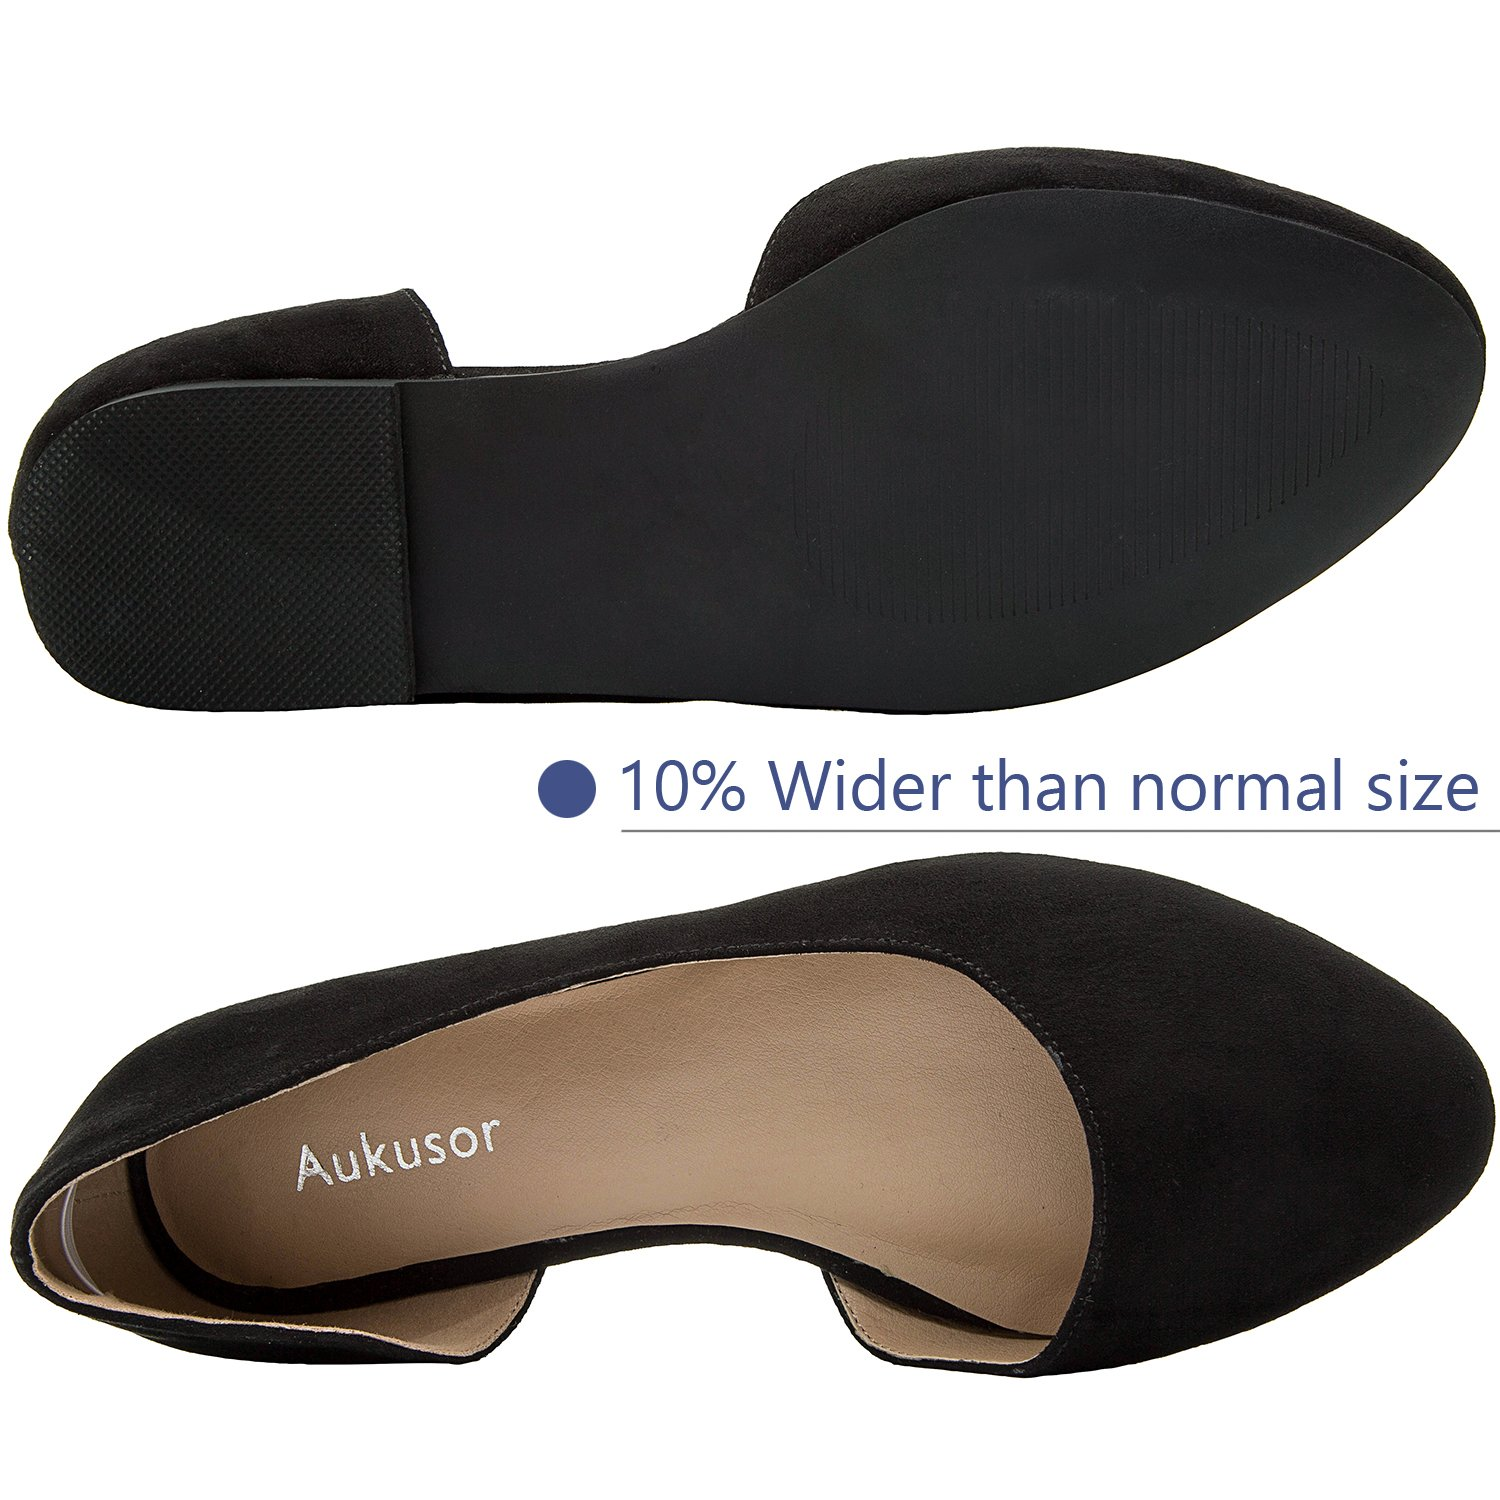 Aukusor Women's Wide Width Ballet Flat - Comfortable Slip On Closed Toe Casual Shoes.(Black 180401, 10.5WW) by Aukusor (Image #3)